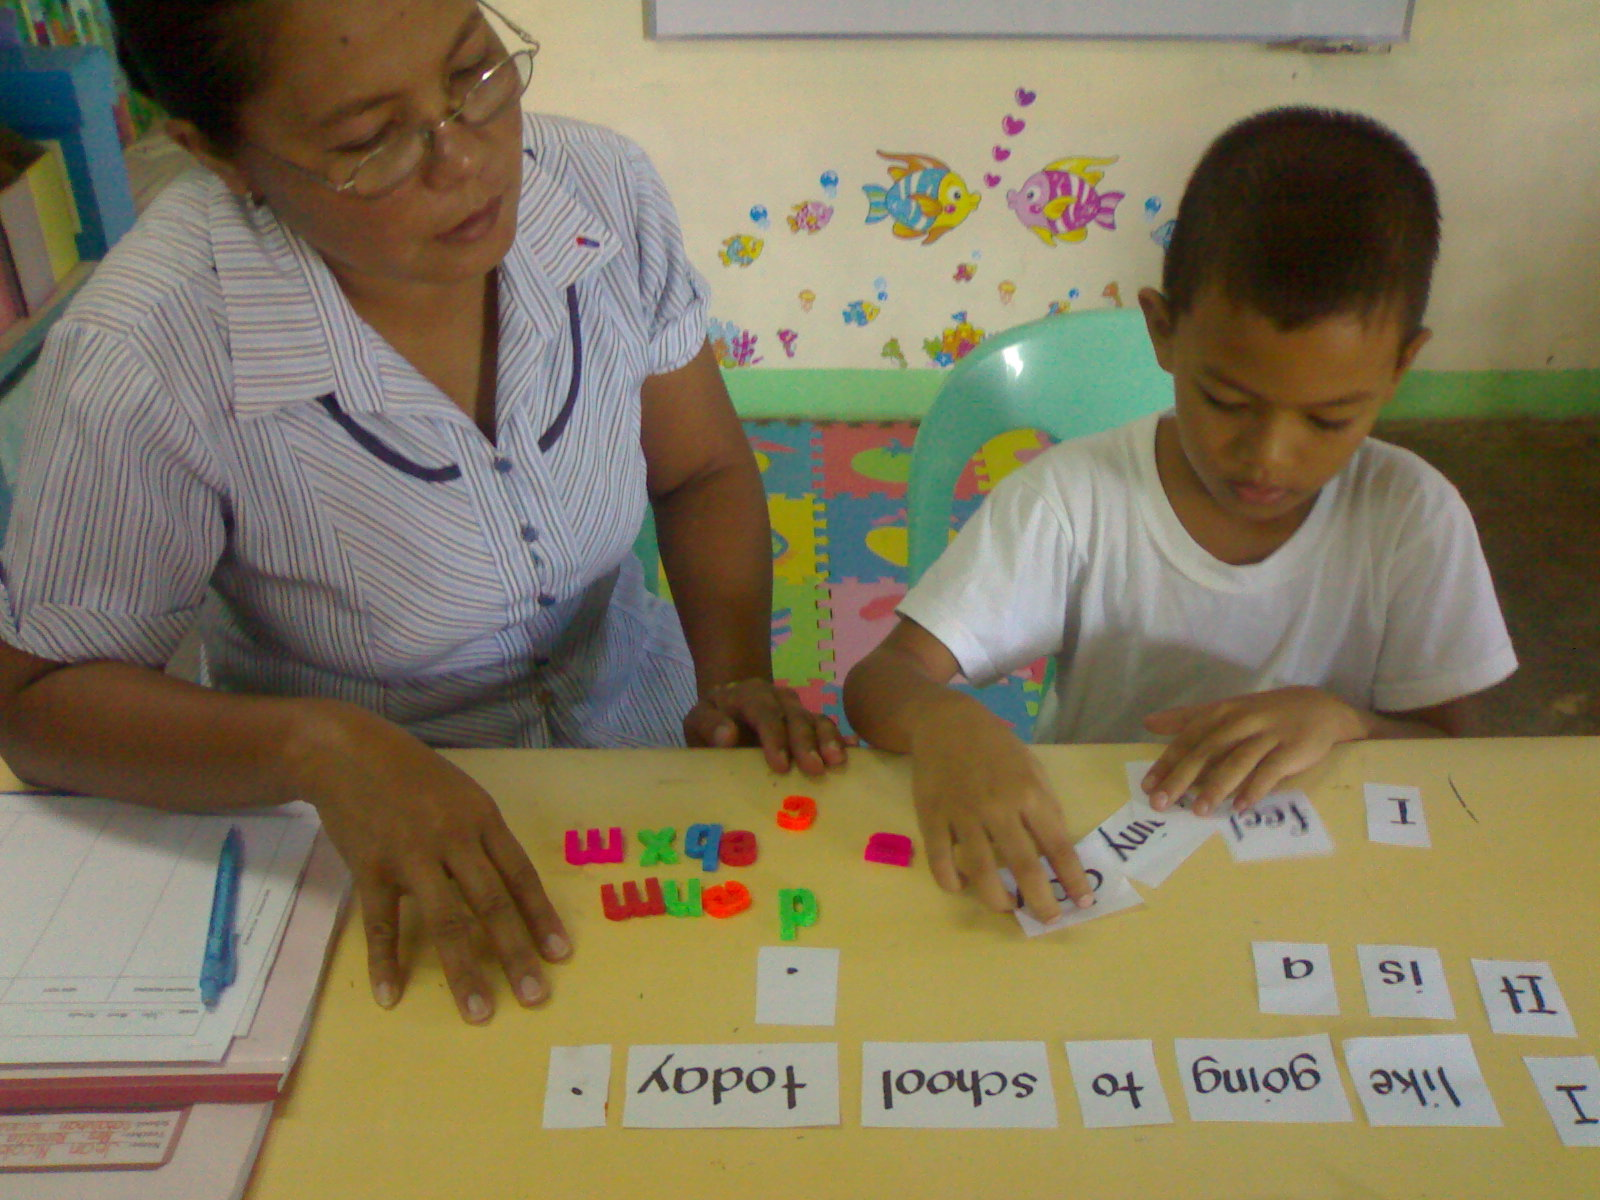 Worksheet Reading Programs For Elementary catalunan grande elem school reading programs elementary was chosen as one of the pilot schools in division davao city program caters pupils who have undergone